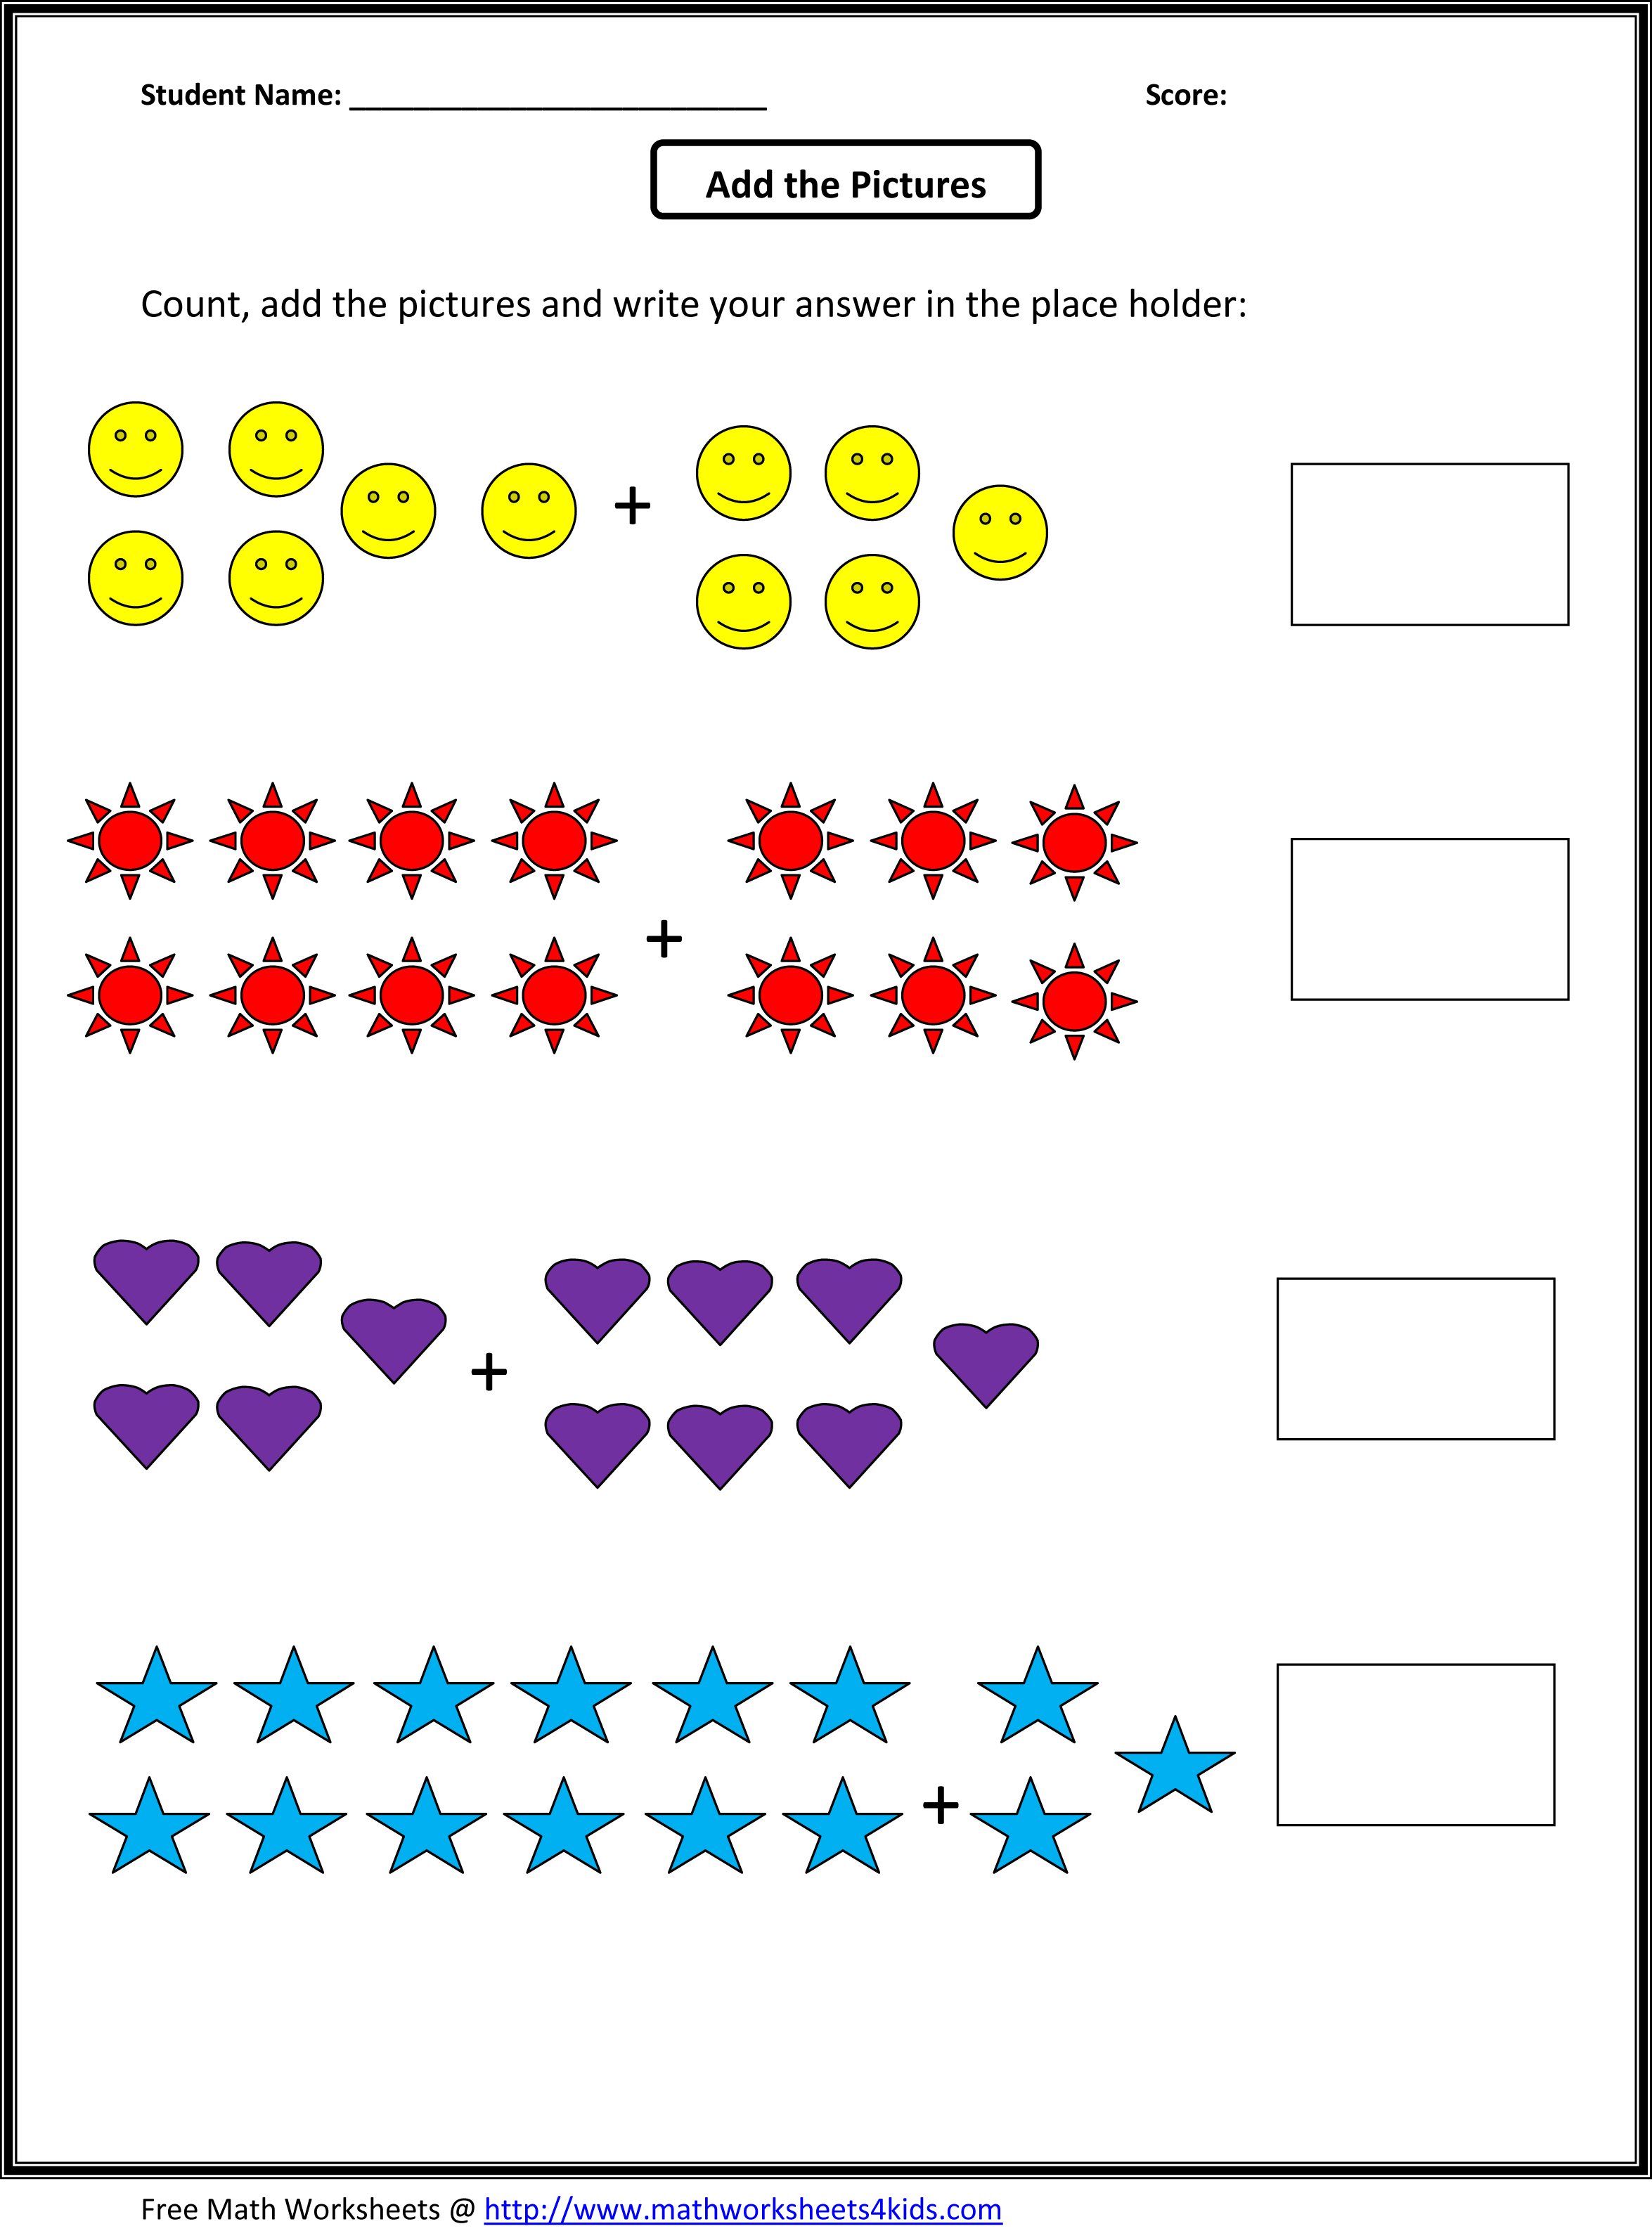 Weirdmailus  Pleasing Grade  Maths Worksheet  Reocurent With Extraordinary Math Worksheets For St Grade Free  Reocurent With Endearing Square And Square Root Worksheets Also Spanish Armada Worksheets In Addition Precis Writing Worksheets And Cvc Words Worksheets For Kindergarten As Well As Free Short Vowel Worksheets For First Grade Additionally Printable Colouring Worksheets From Reocurentcom With Weirdmailus  Extraordinary Grade  Maths Worksheet  Reocurent With Endearing Math Worksheets For St Grade Free  Reocurent And Pleasing Square And Square Root Worksheets Also Spanish Armada Worksheets In Addition Precis Writing Worksheets From Reocurentcom